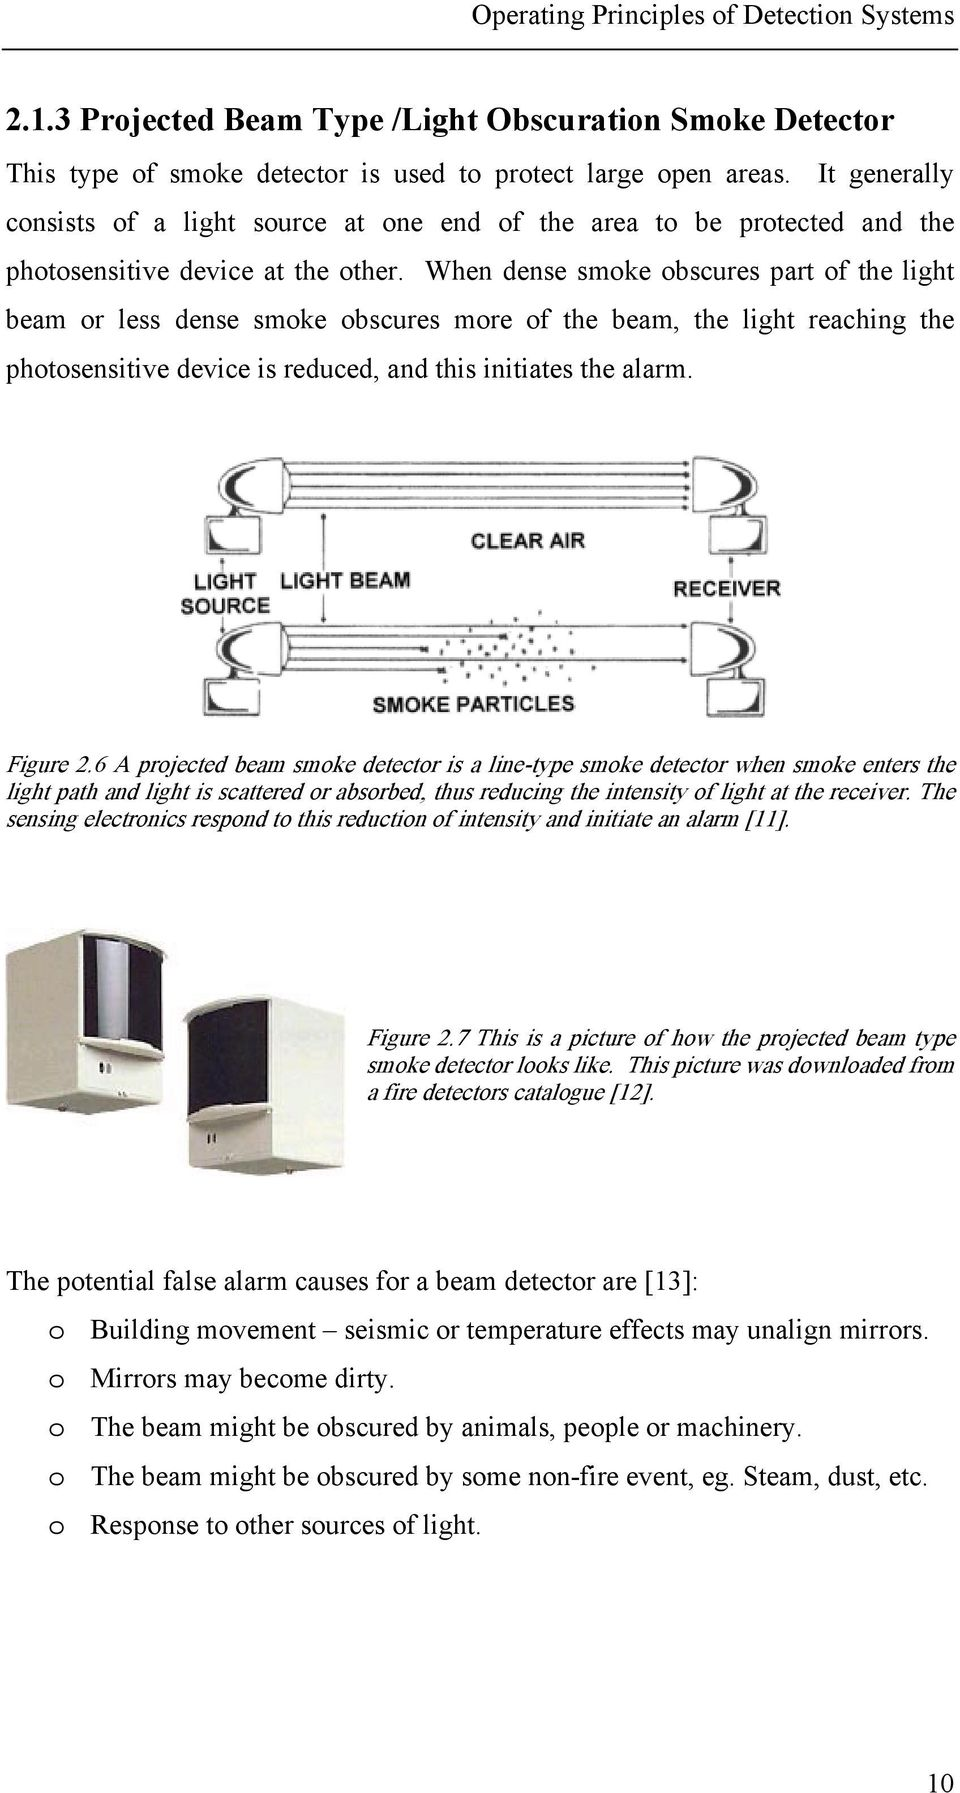 When dense smoke obscures part of the light beam or less dense smoke obscures more of the beam, the light reaching the photosensitive device is reduced, and this initiates the alarm. Figure 2.